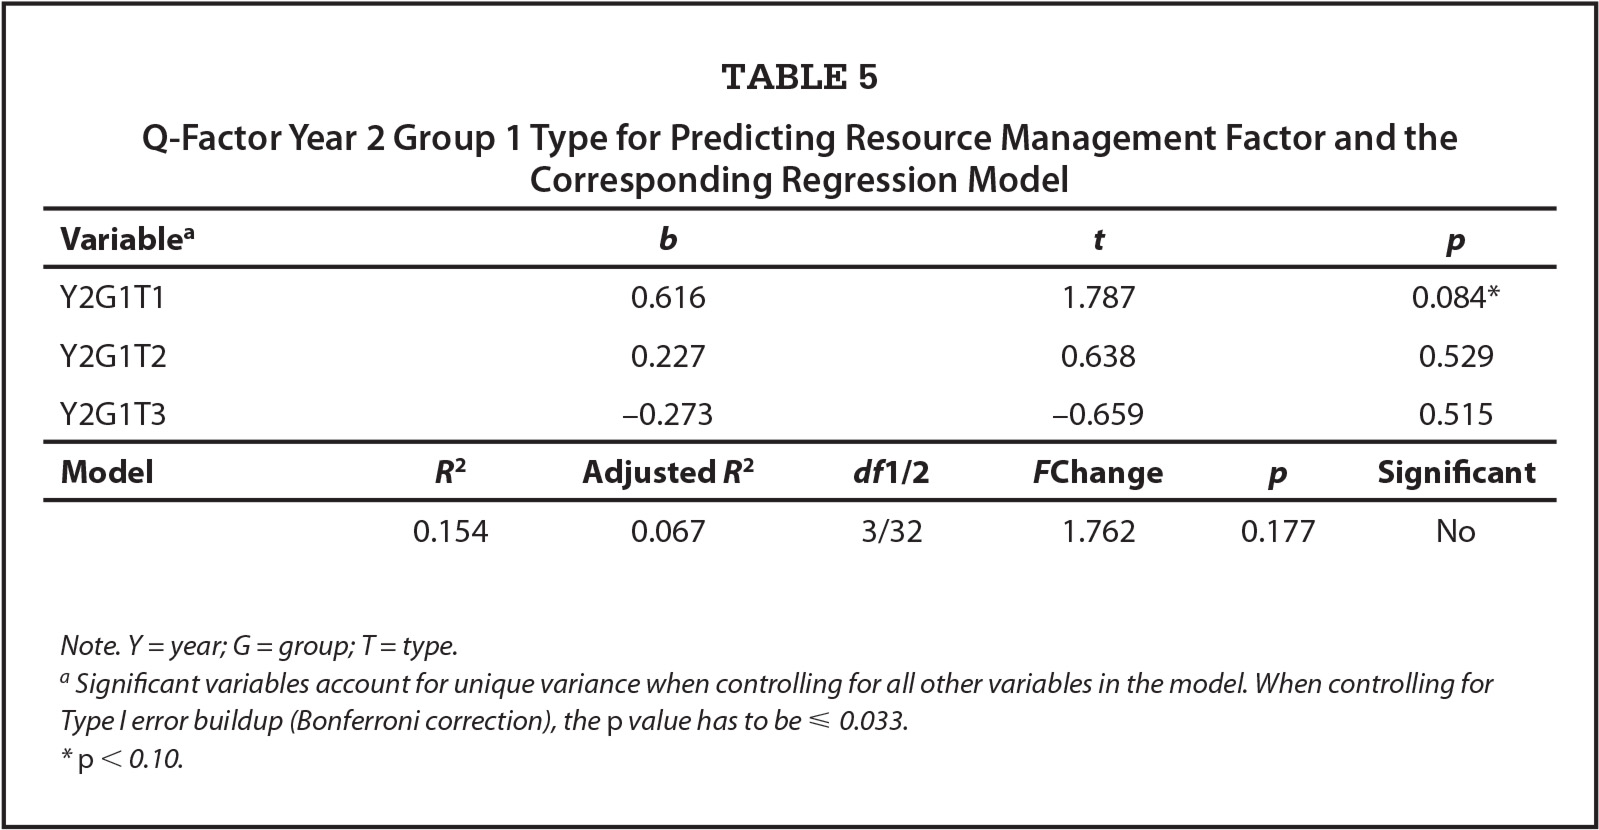 Q-Factor Year 2 Group 1 Type for Predicting Resource Management Factor and the Corresponding Regression Model